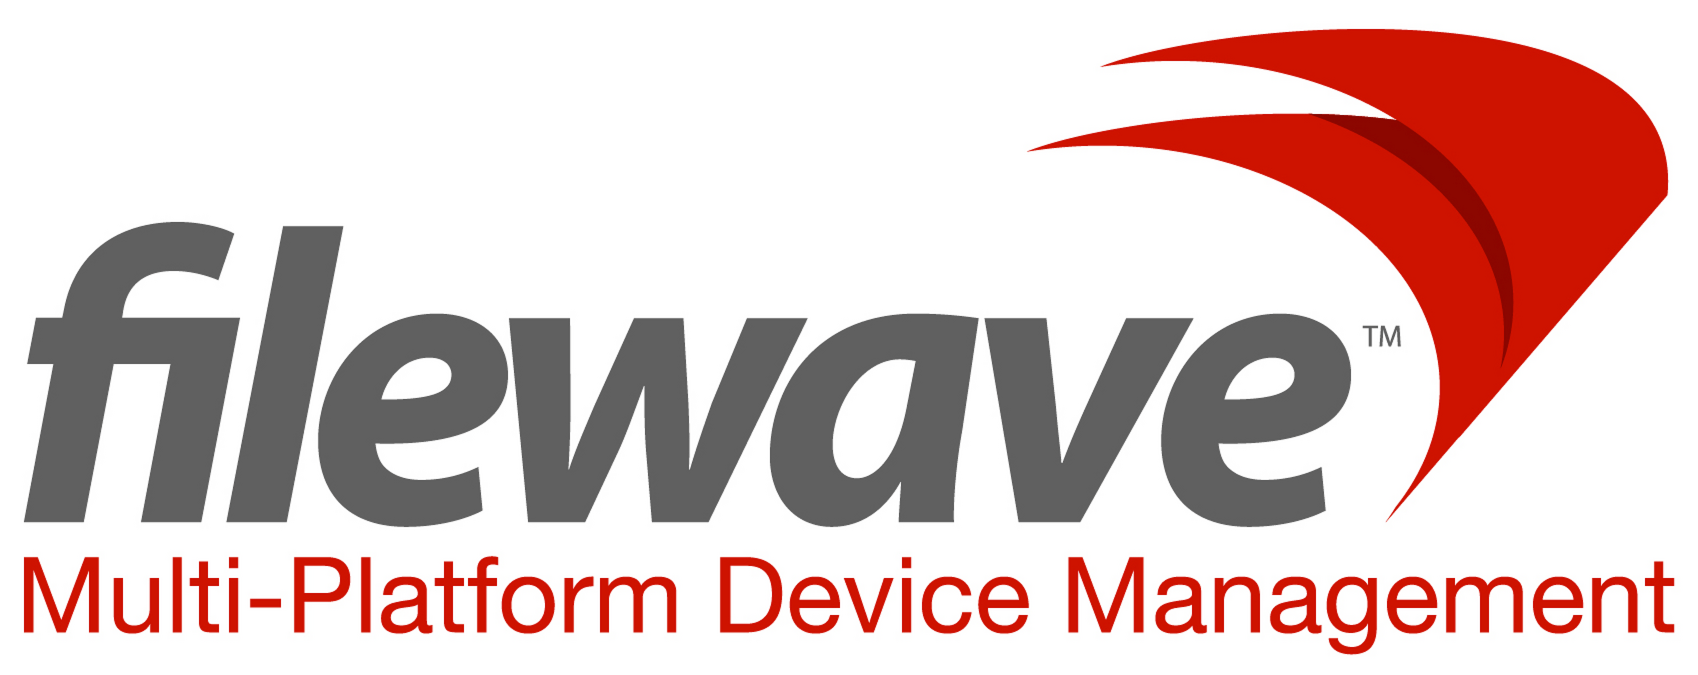 FileWave Europe GmbH